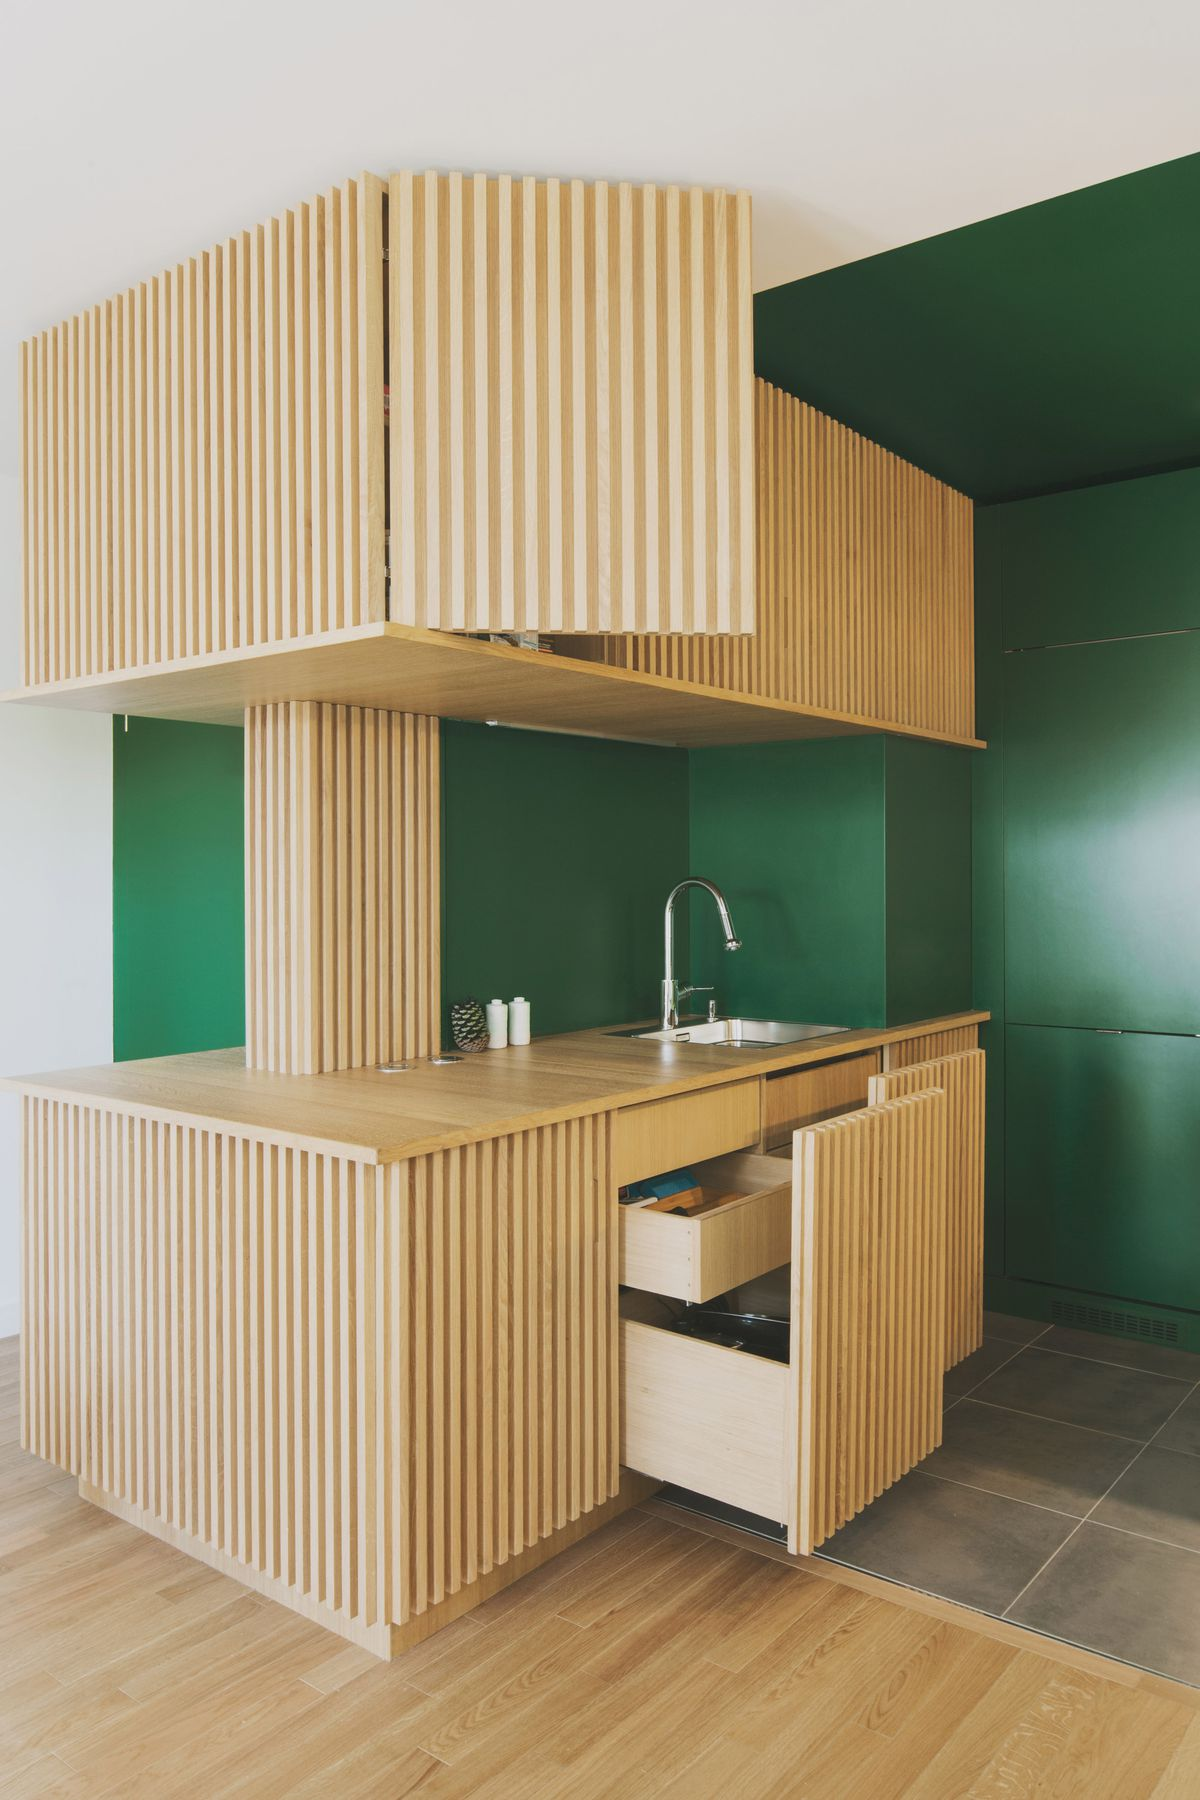 Green kitchen with birch wood countertops